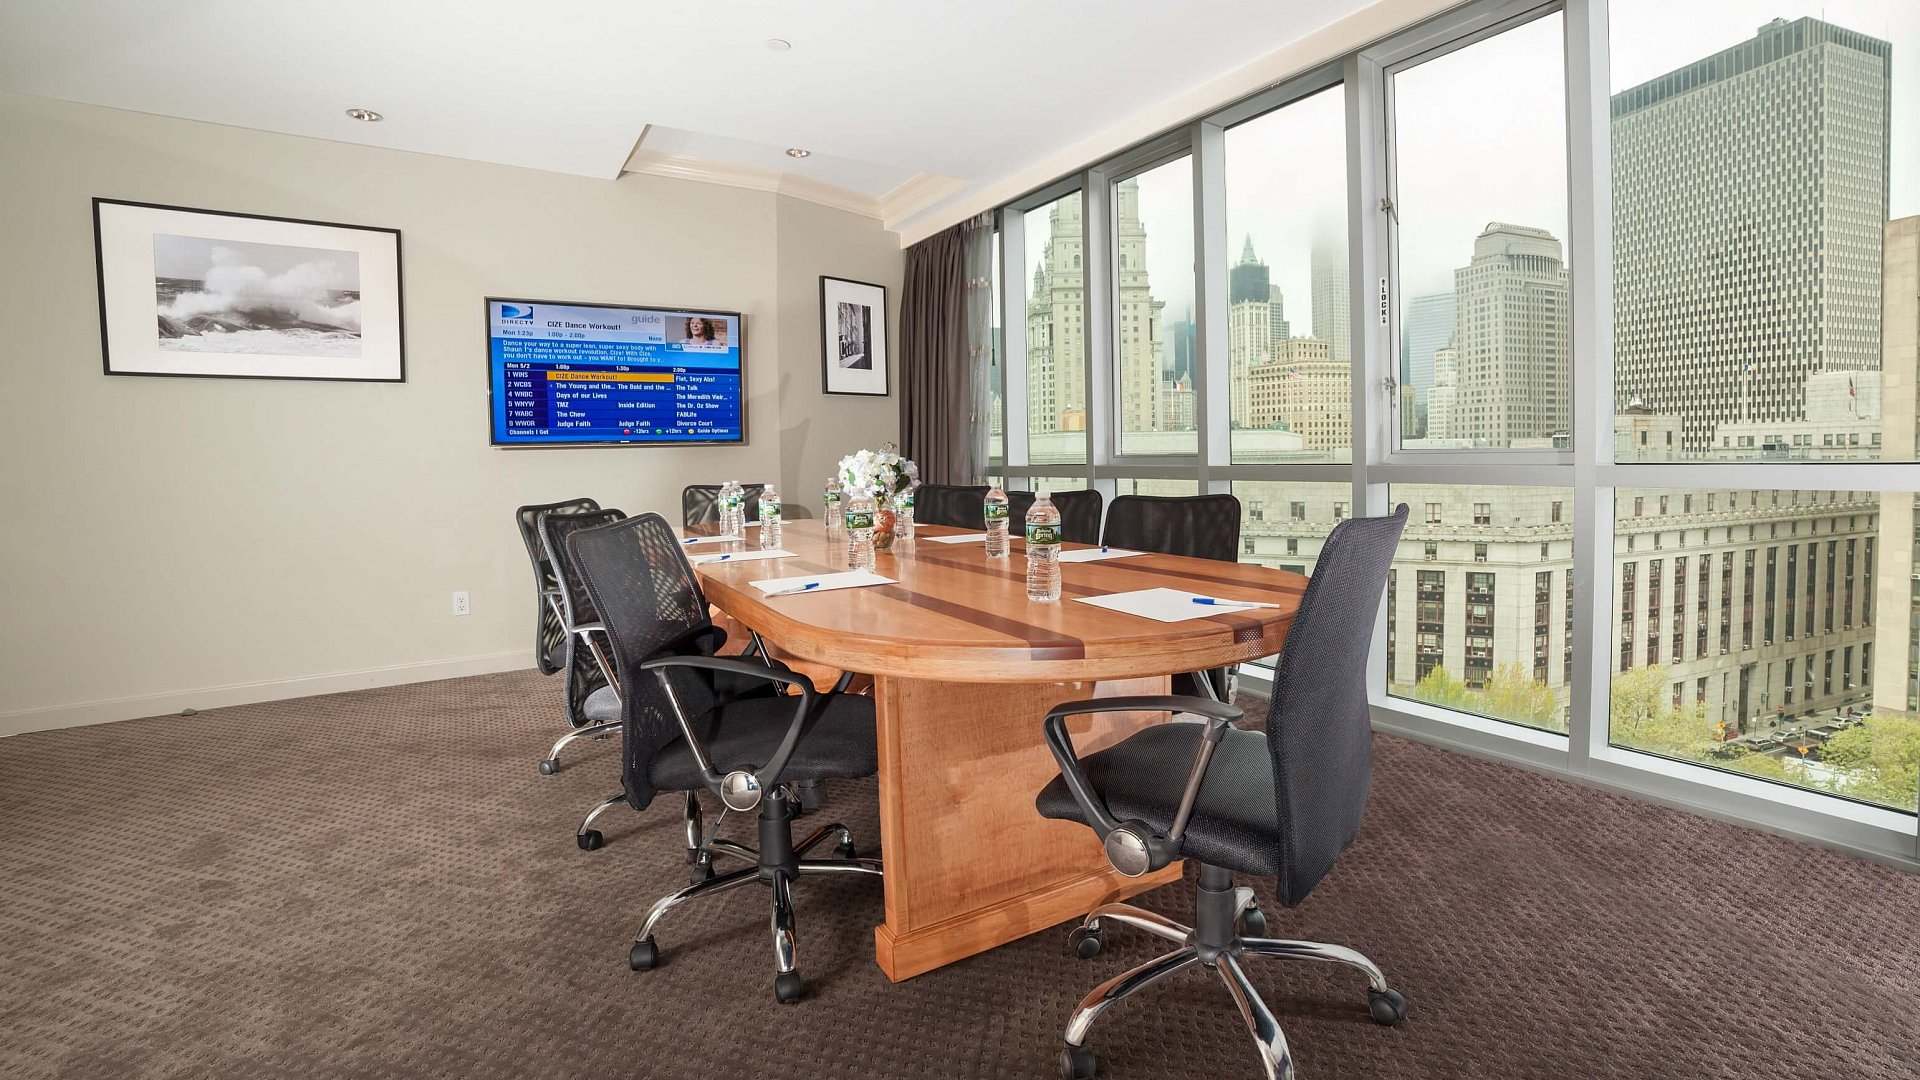 Photo of Meeting Room with a view of NYC that can accommodate up to 8 people.